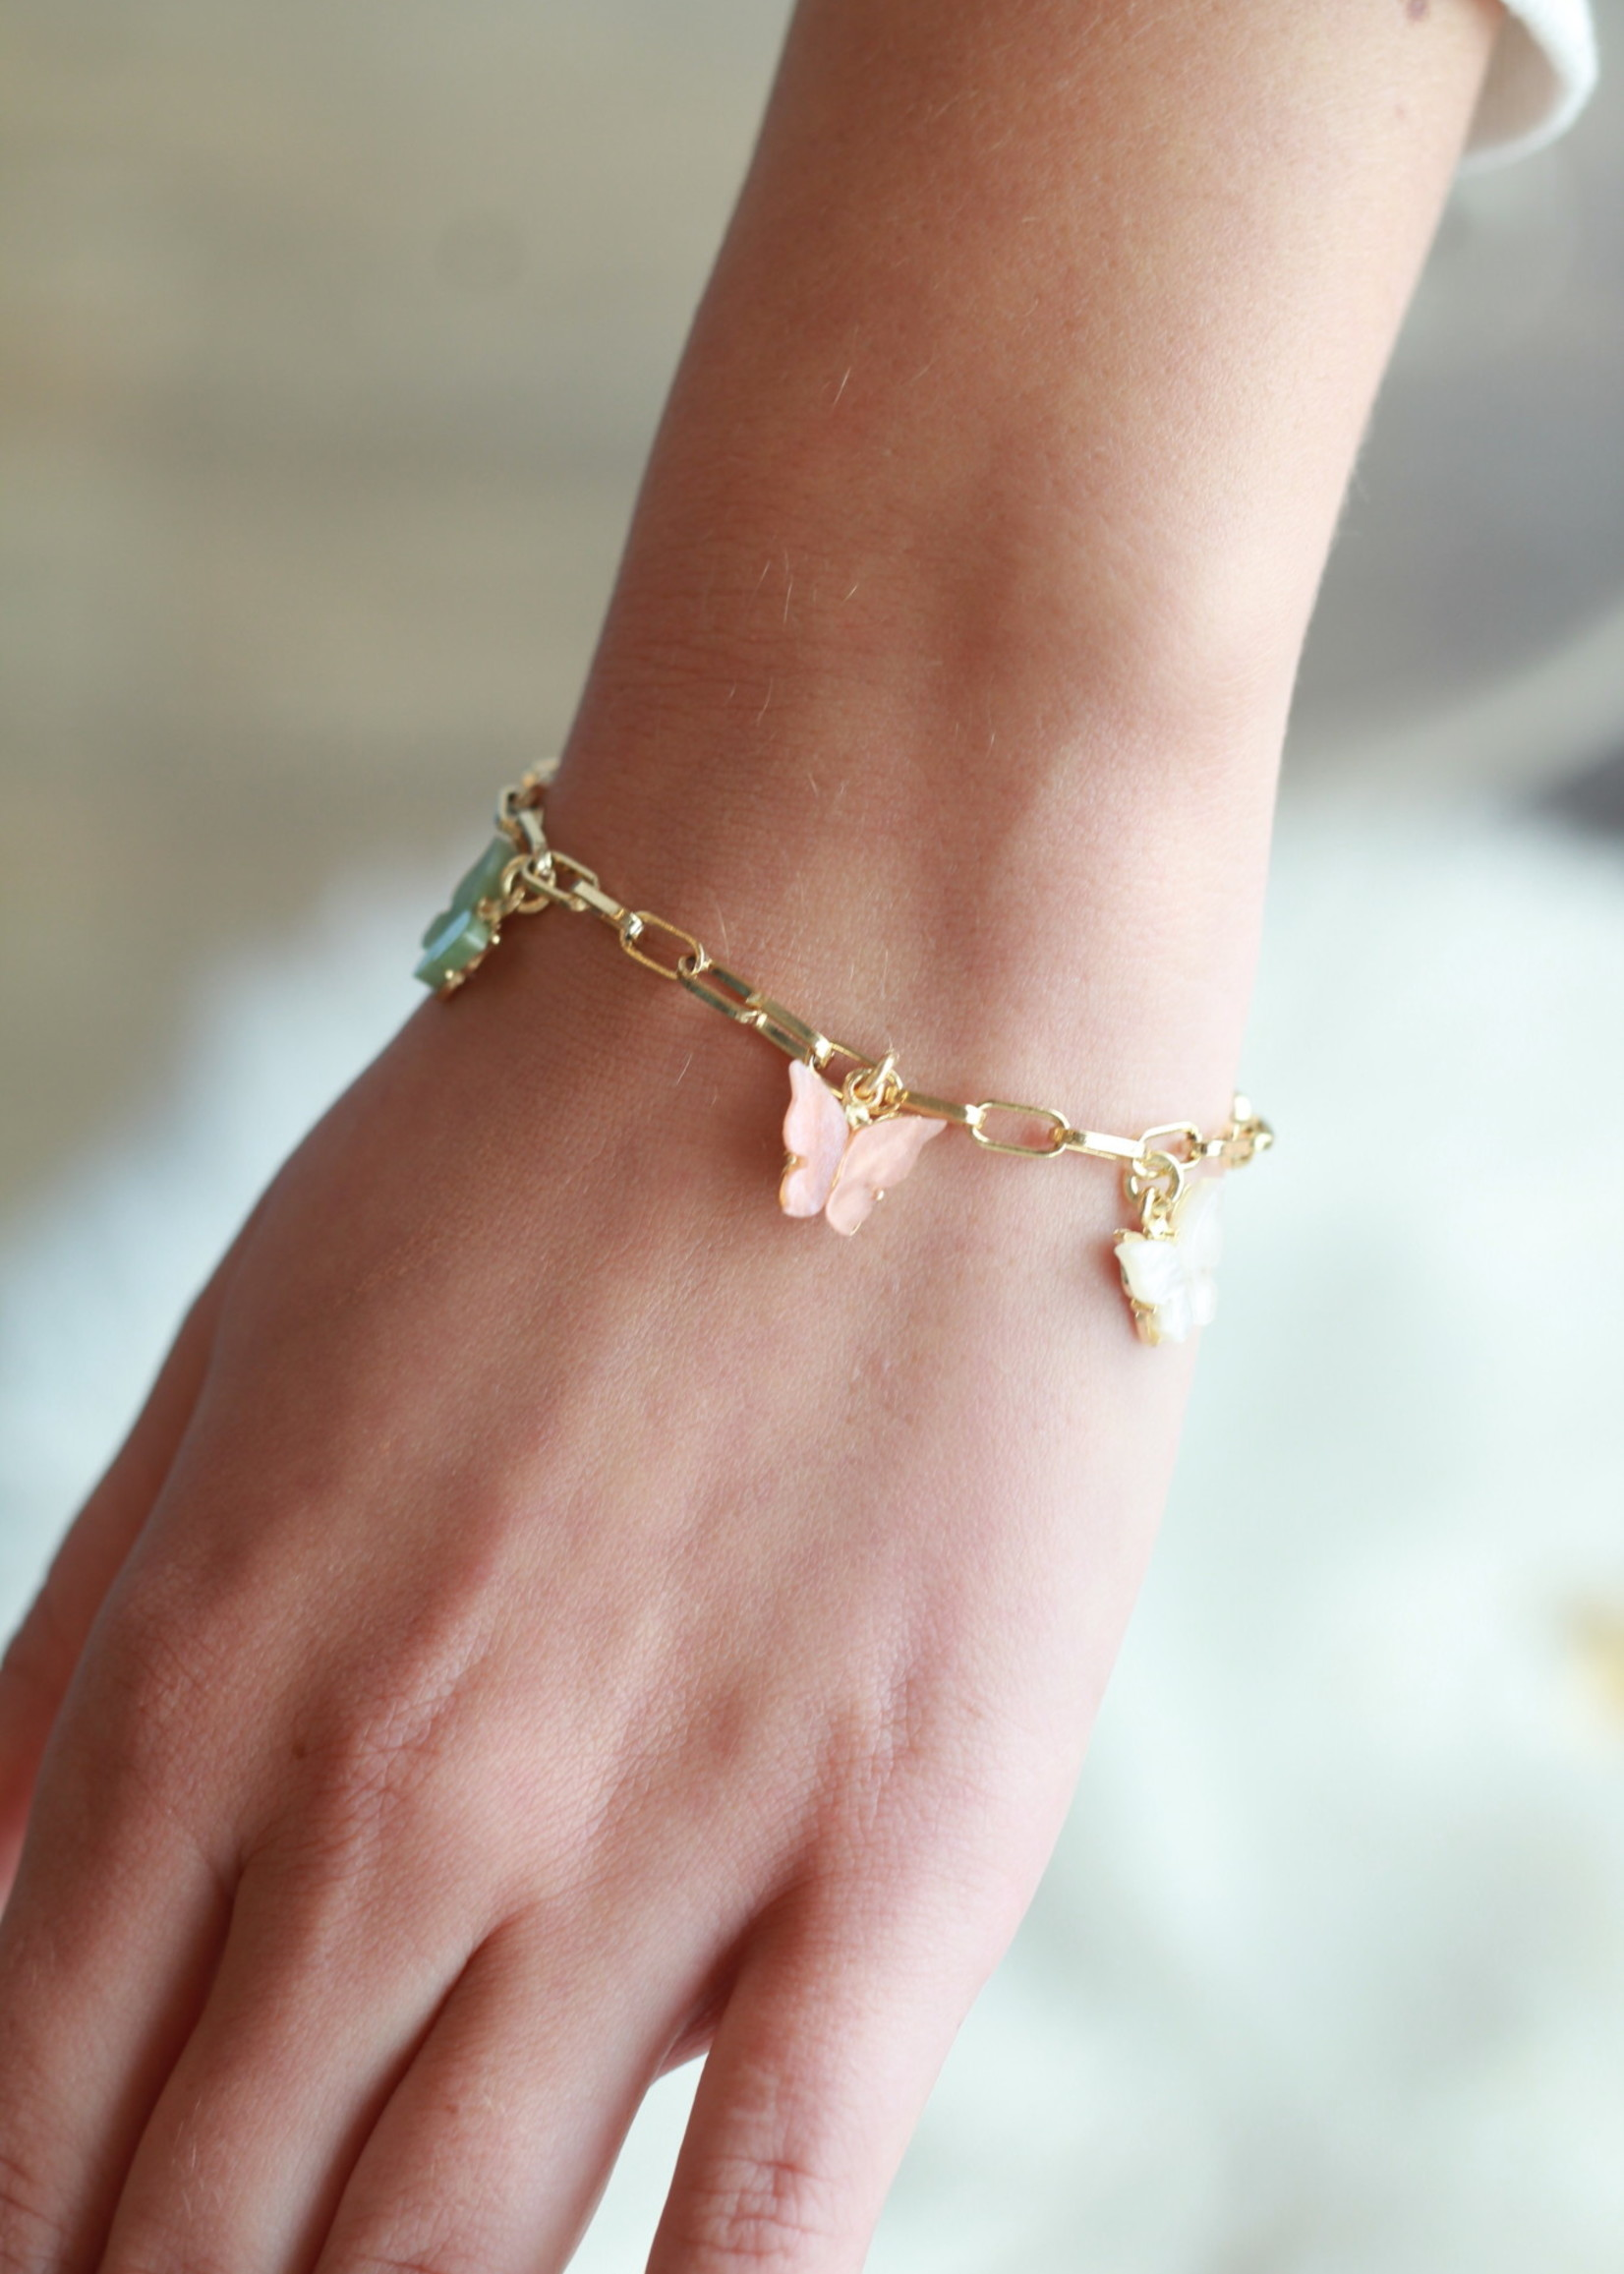 Allison Conway AC Butterfly Charm Bracelet